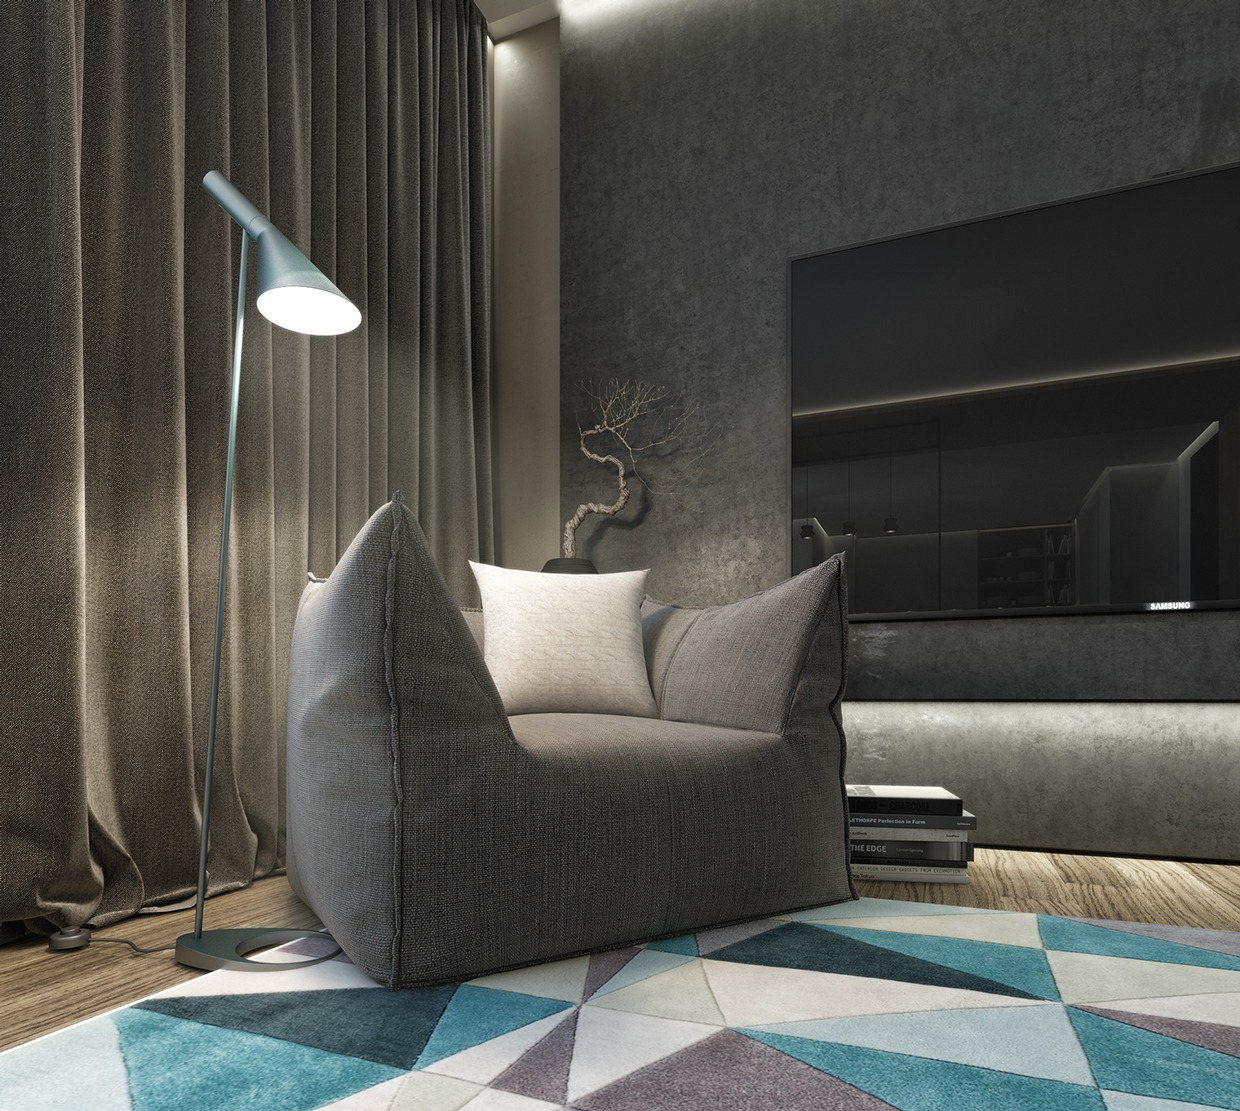 Cool Modern Armchair - Dark neutrals and clean lines unite six stylish homes